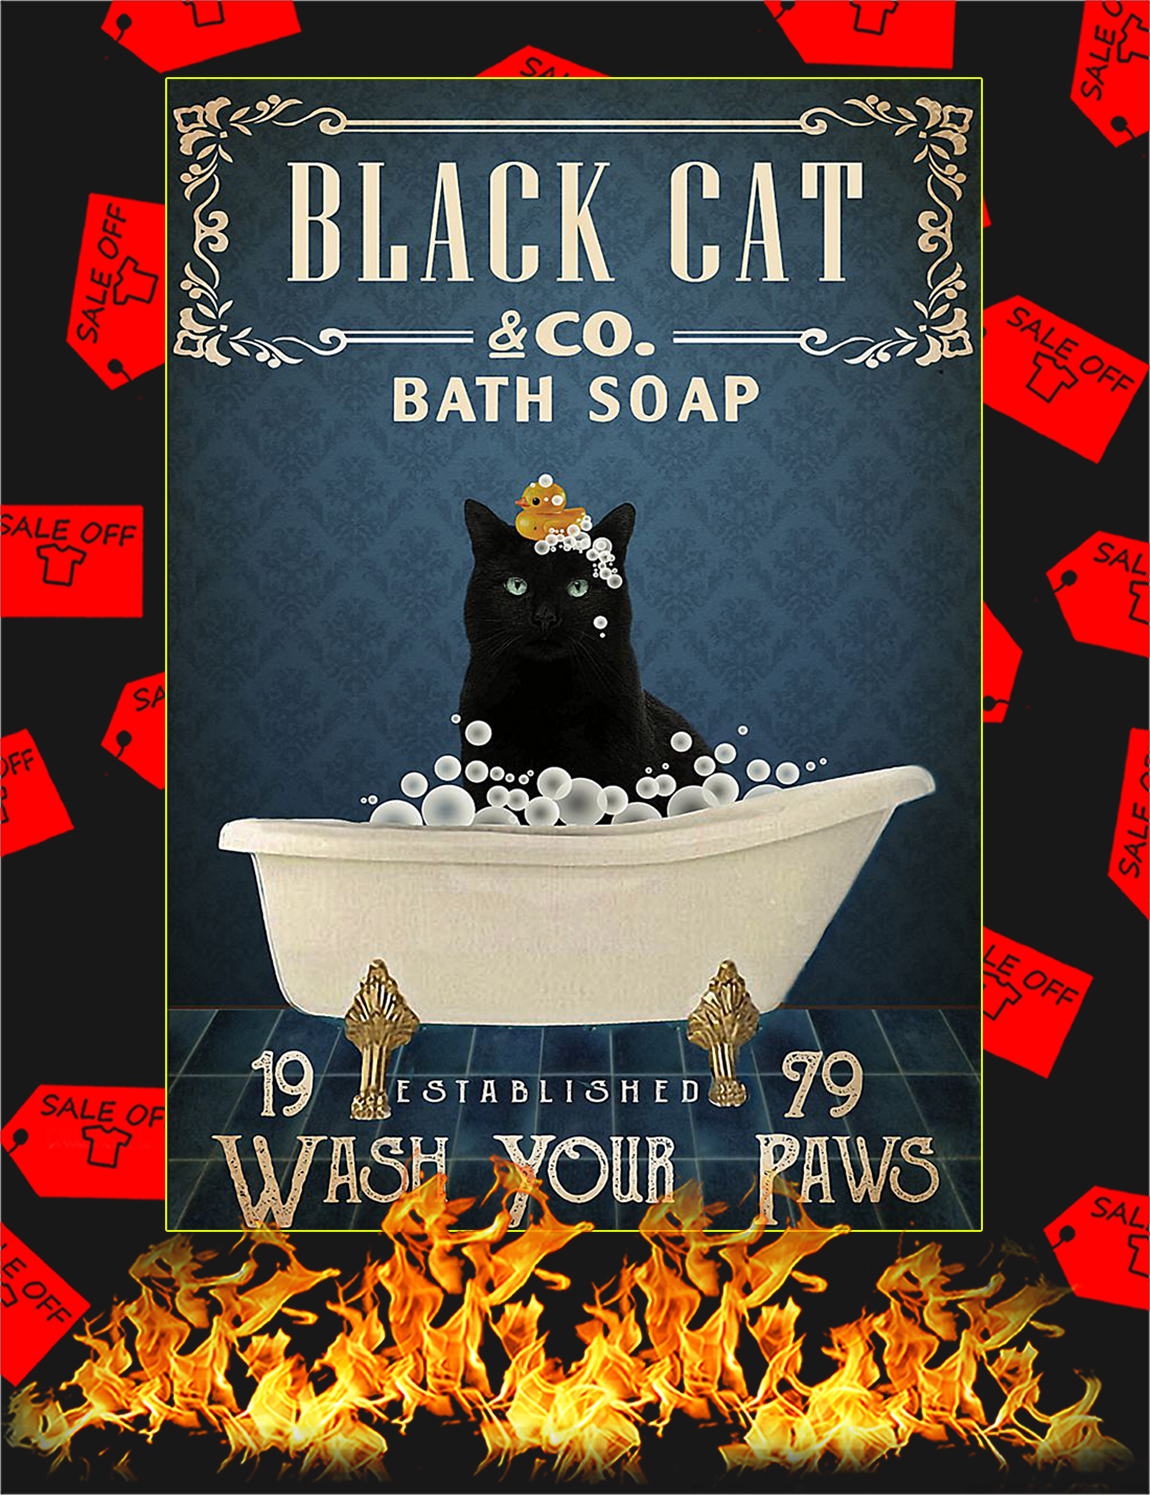 Black cat company bath soap poster - A3